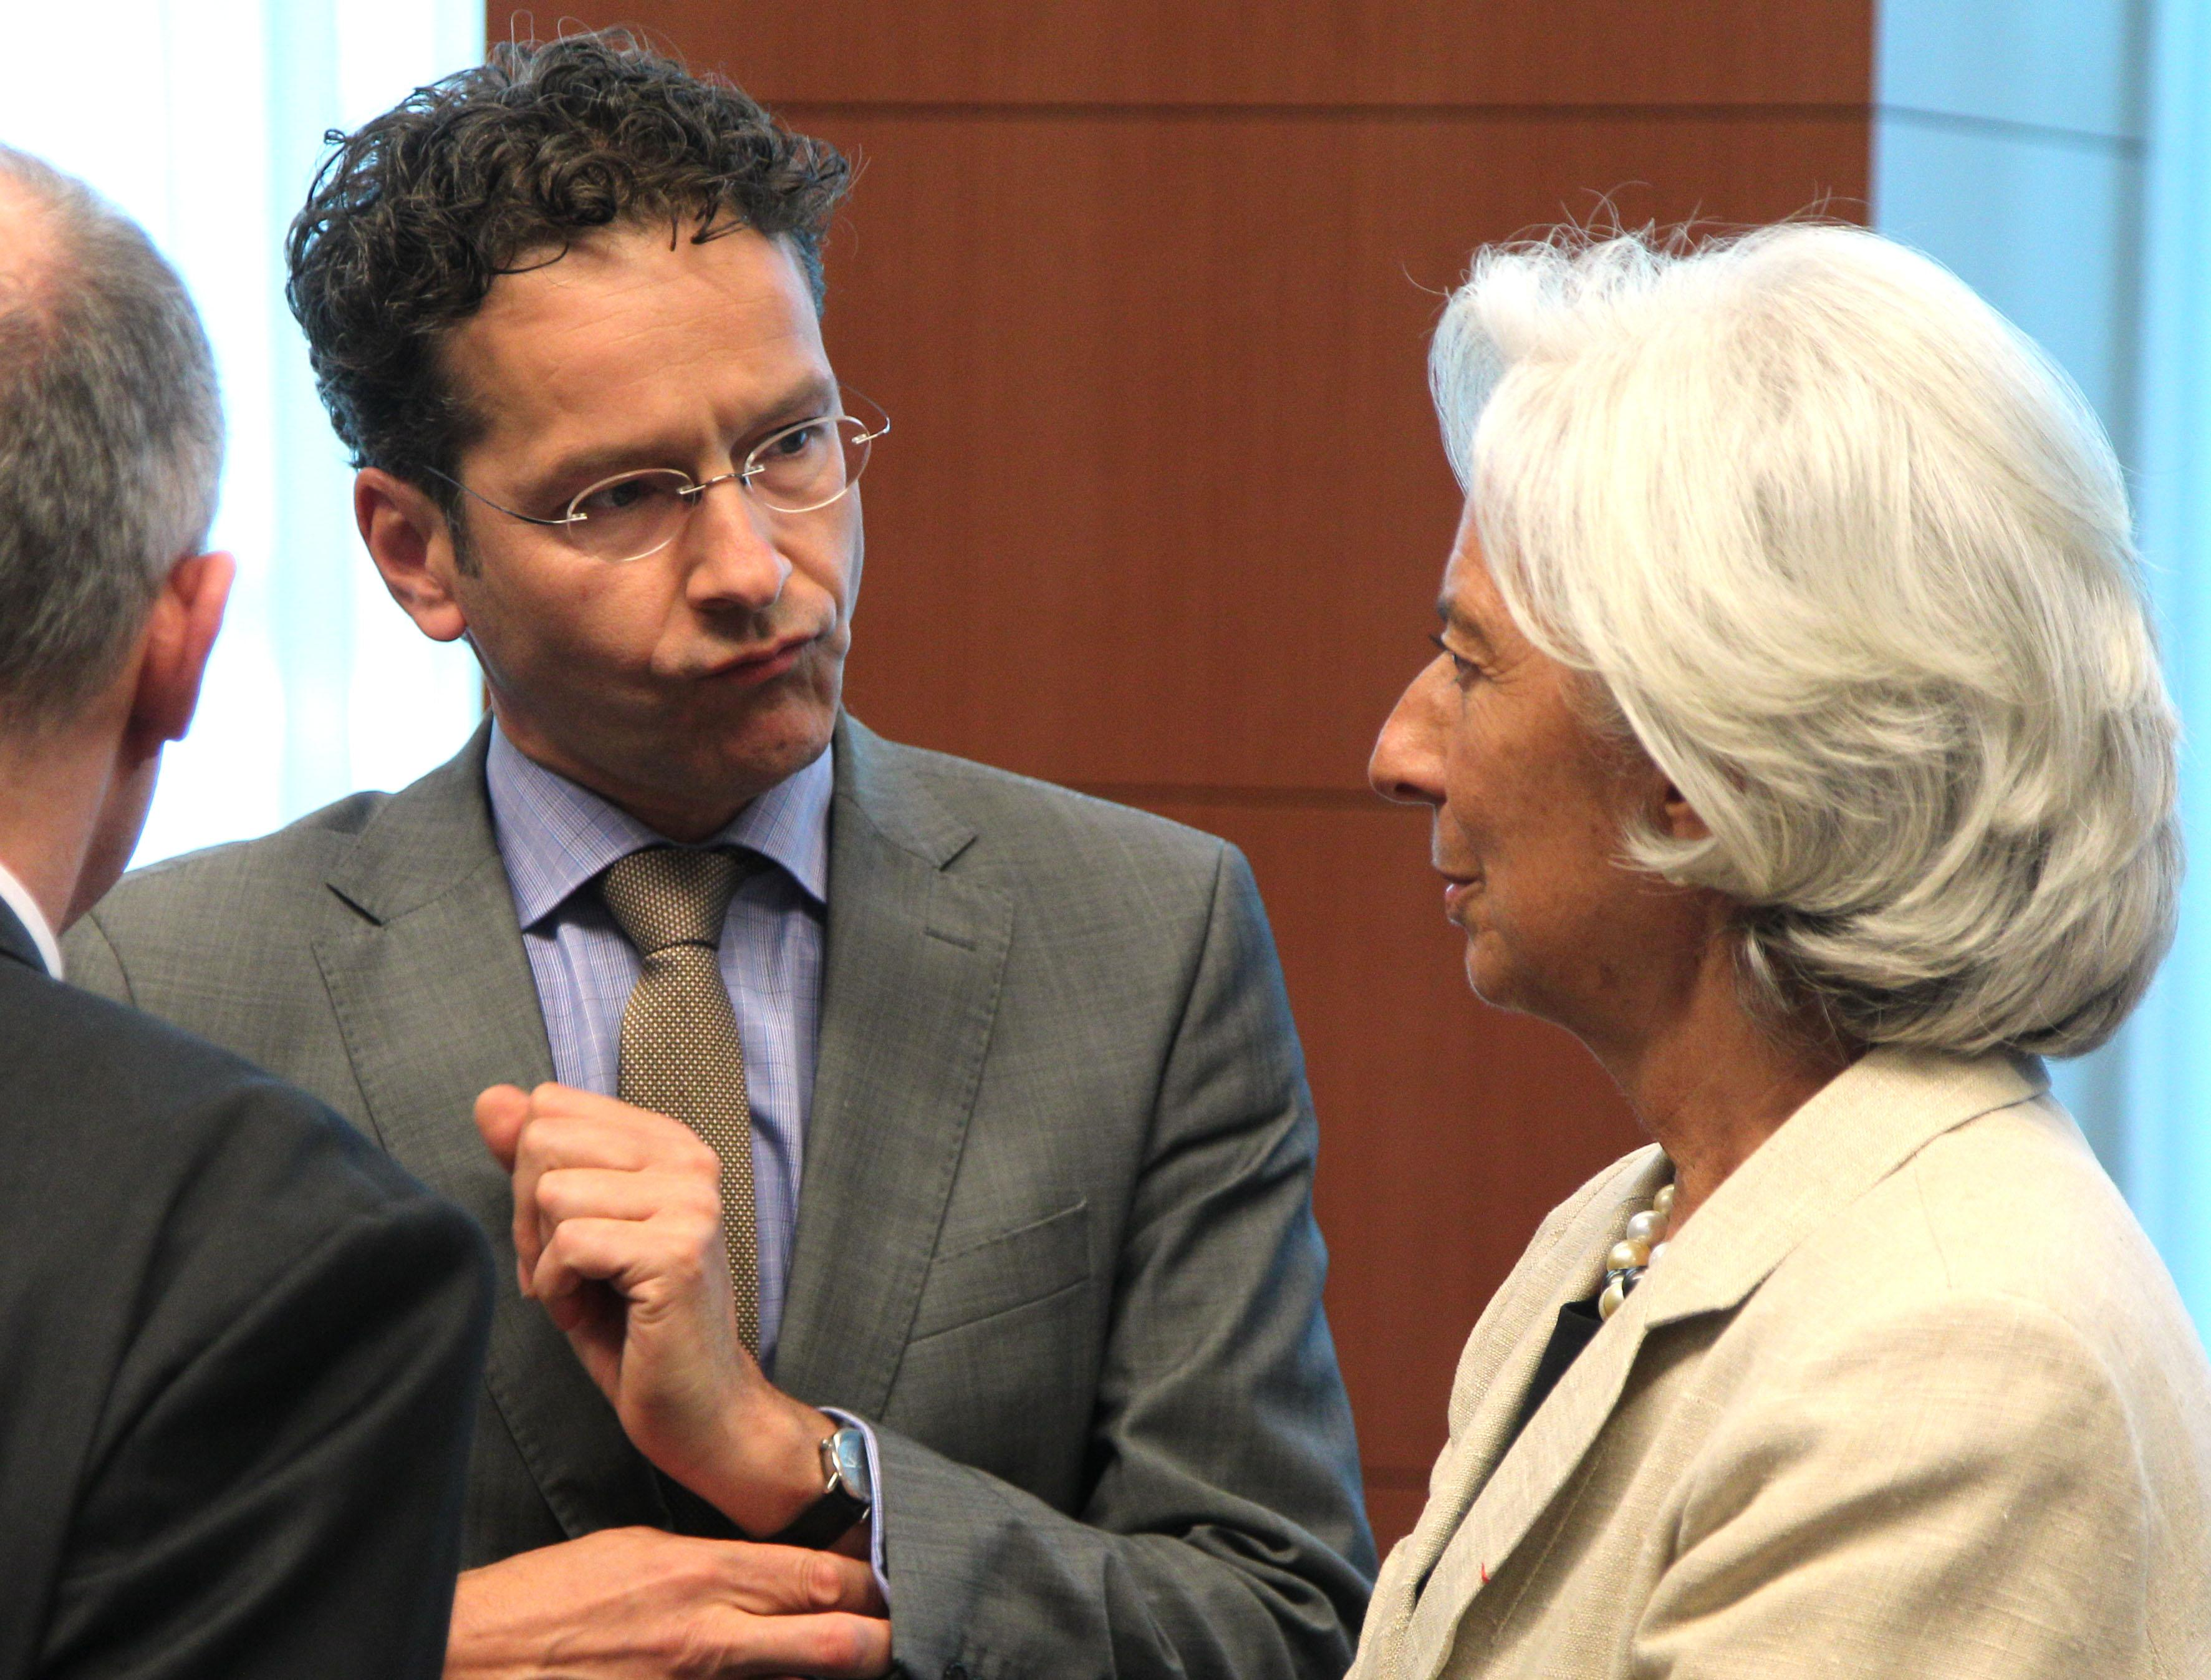 International Monetary Fund managing director Christine Lagarde, right, talks with Dutch Finance Minister and chairman of the Eurogroup Jeroen Dijsselbloem, during the Eurogroup meeting, at the European Council building in Brussels, Monday, July 8, 2013. The finance ministers of the 17 European countries that use the euro are expected to approve the release of another installment of the rescue funds that Greece has been relying on since May 2010. (AP Photo/Yves Logghe)